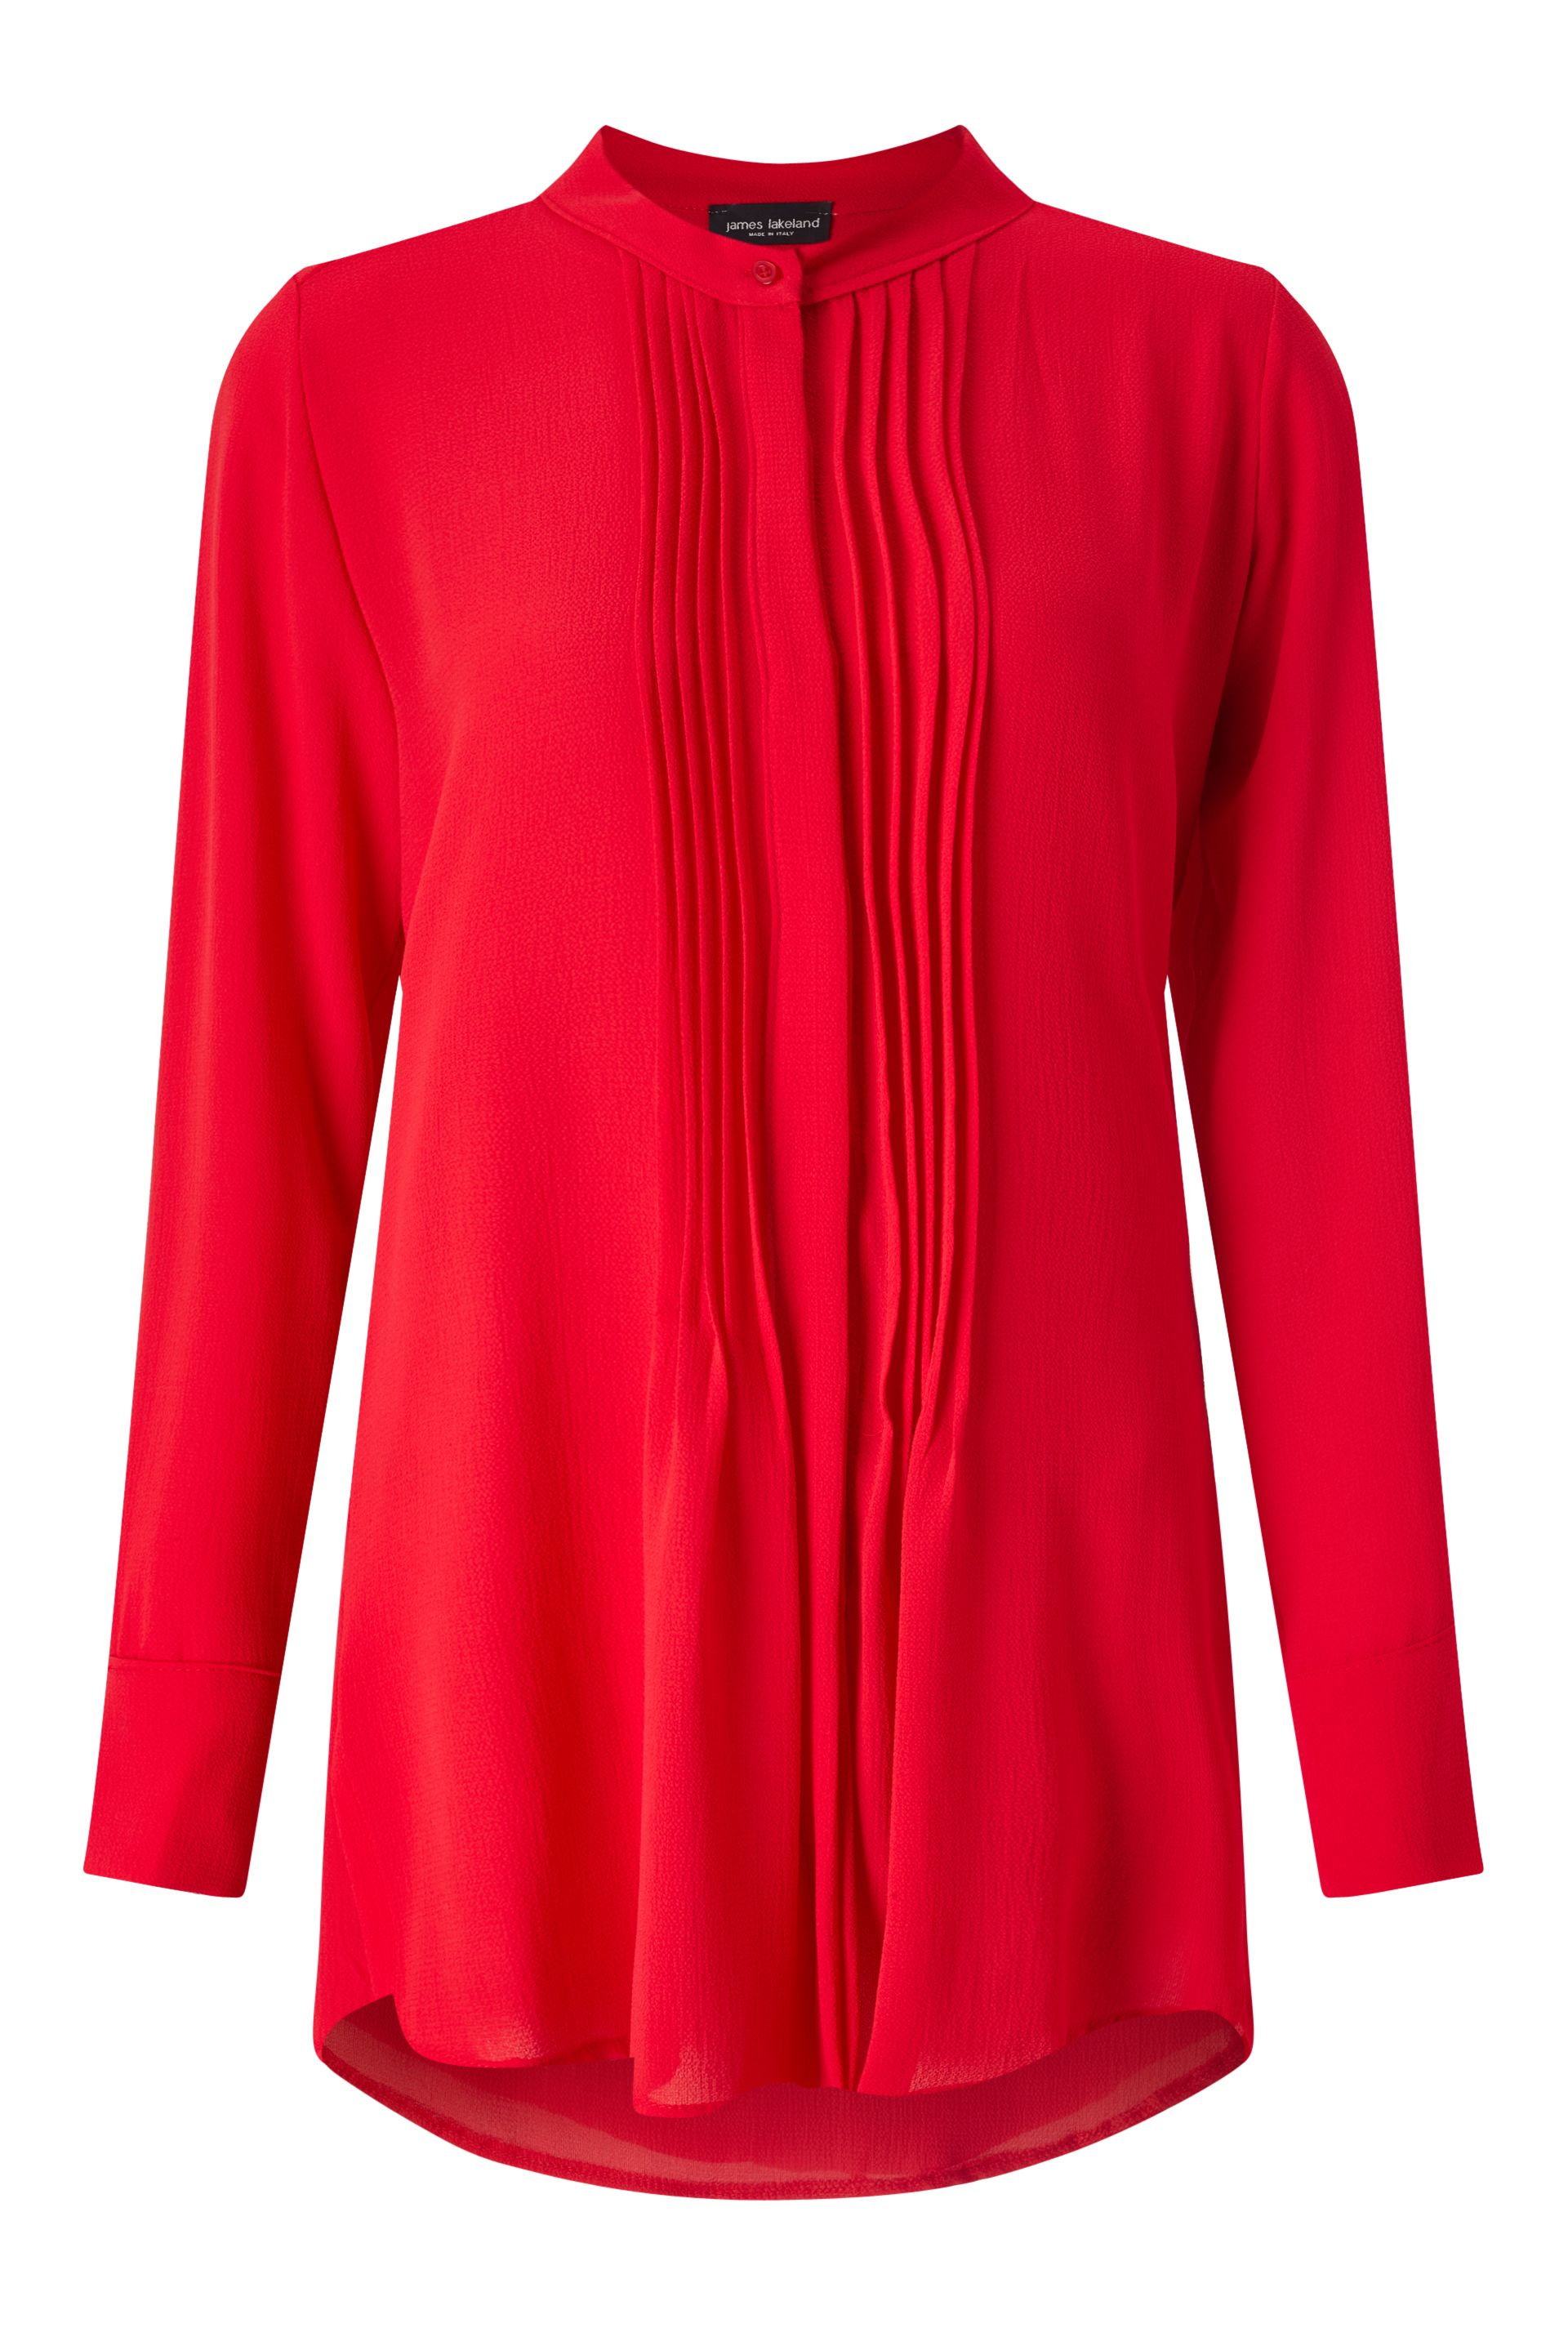 James Lakeland Pleat Front Blouse, Red